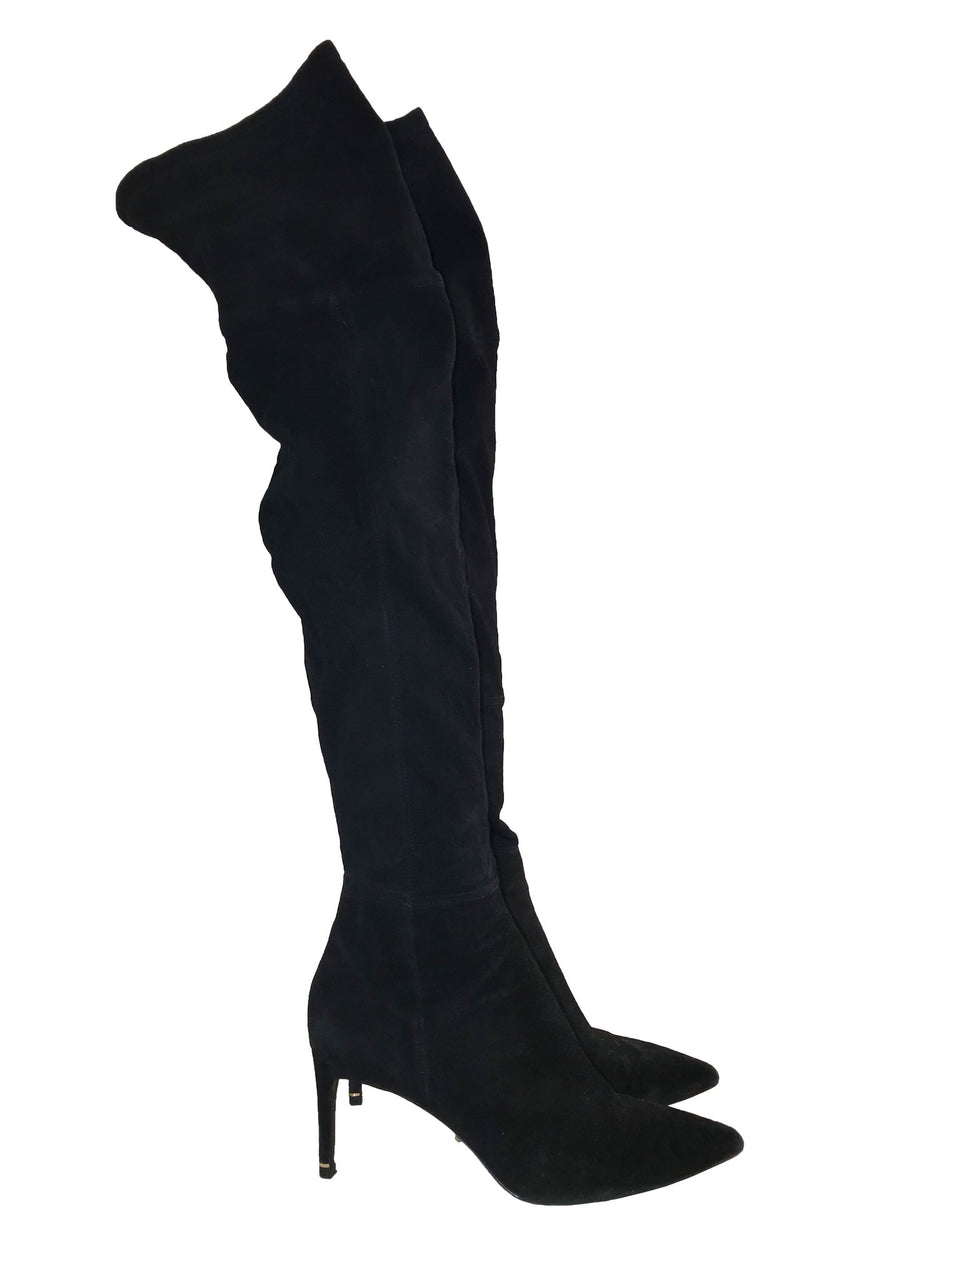 Over-the-Knee Black Suede Boots